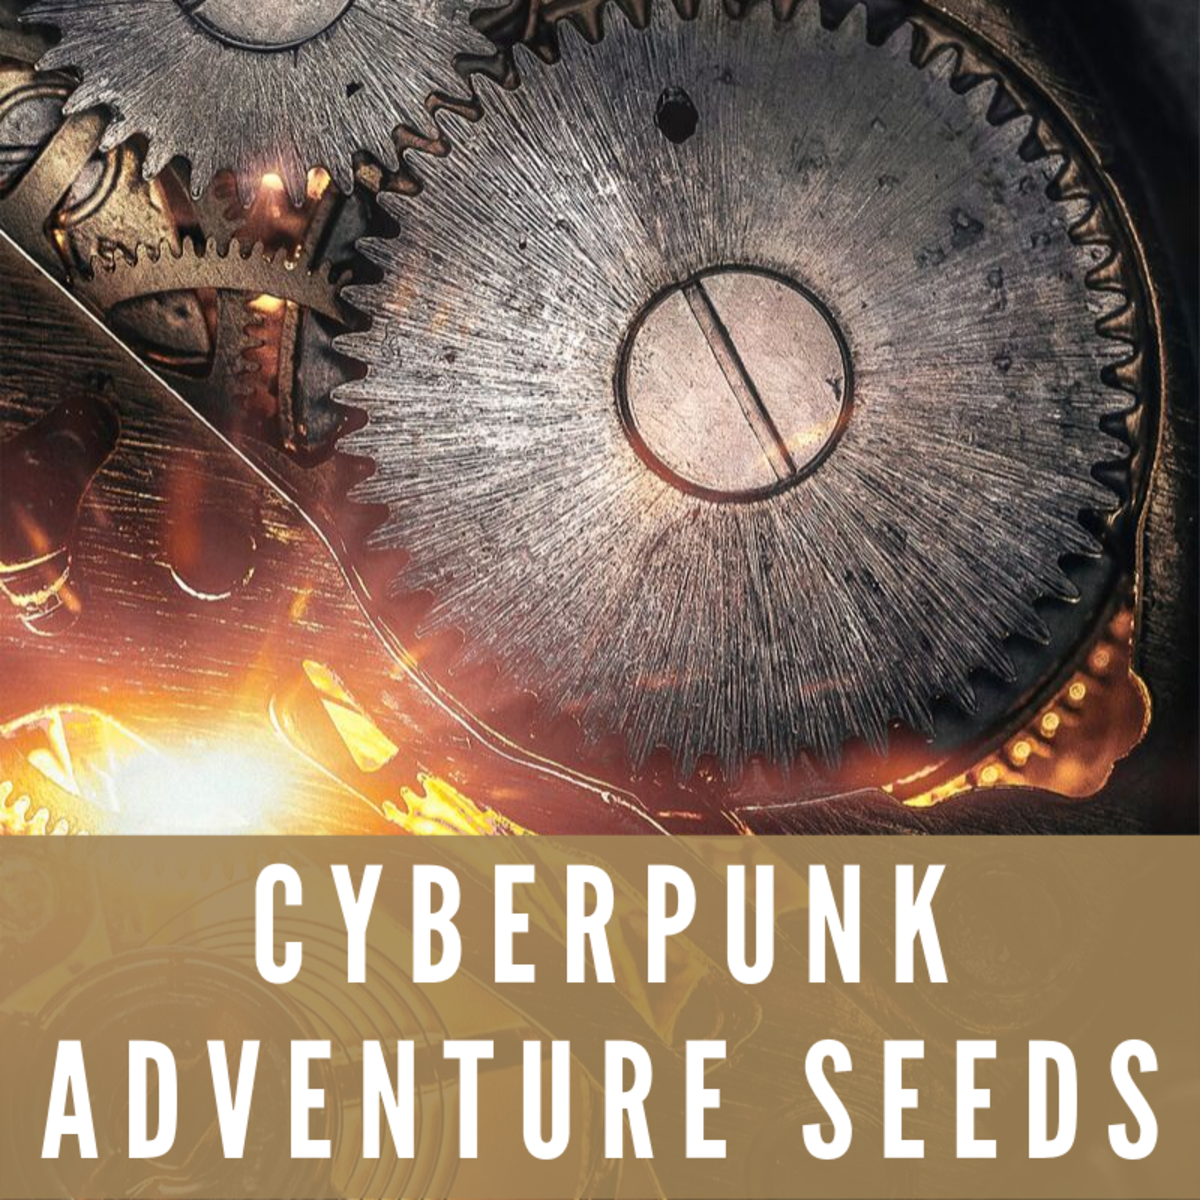 11 Steampunk Adventure Seeds